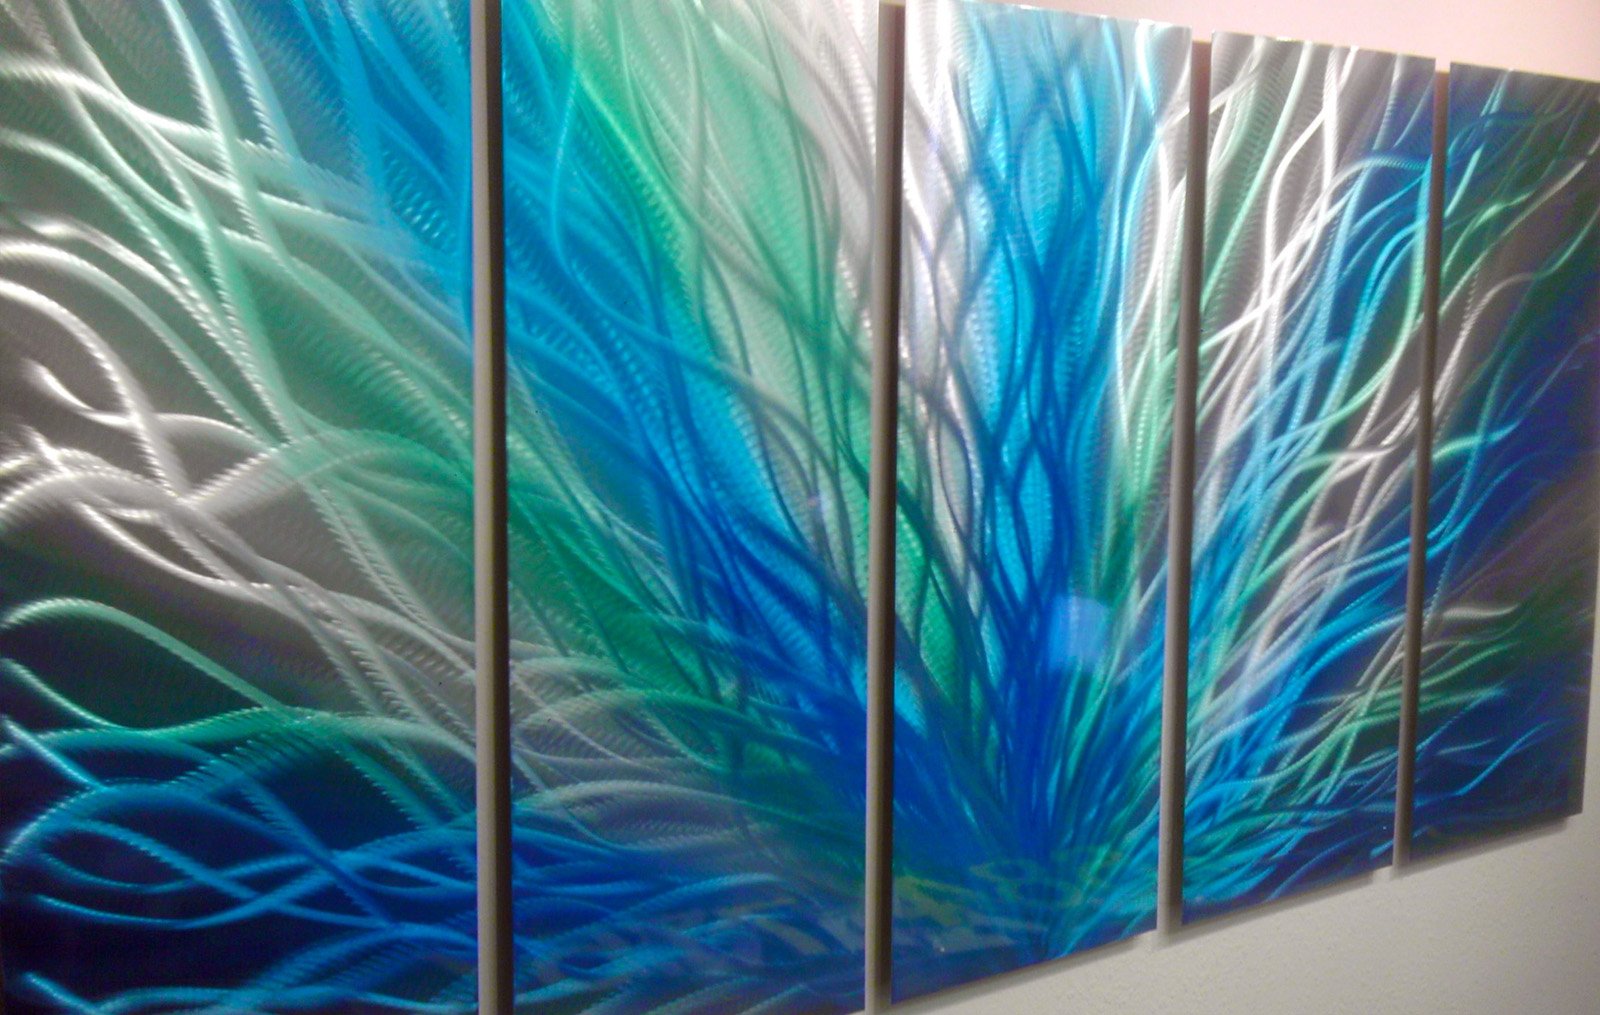 Blue Metal Wall Art Unique Radiance Large Green Blue Metal Wall Art Contemporary Modern Design Inspiration